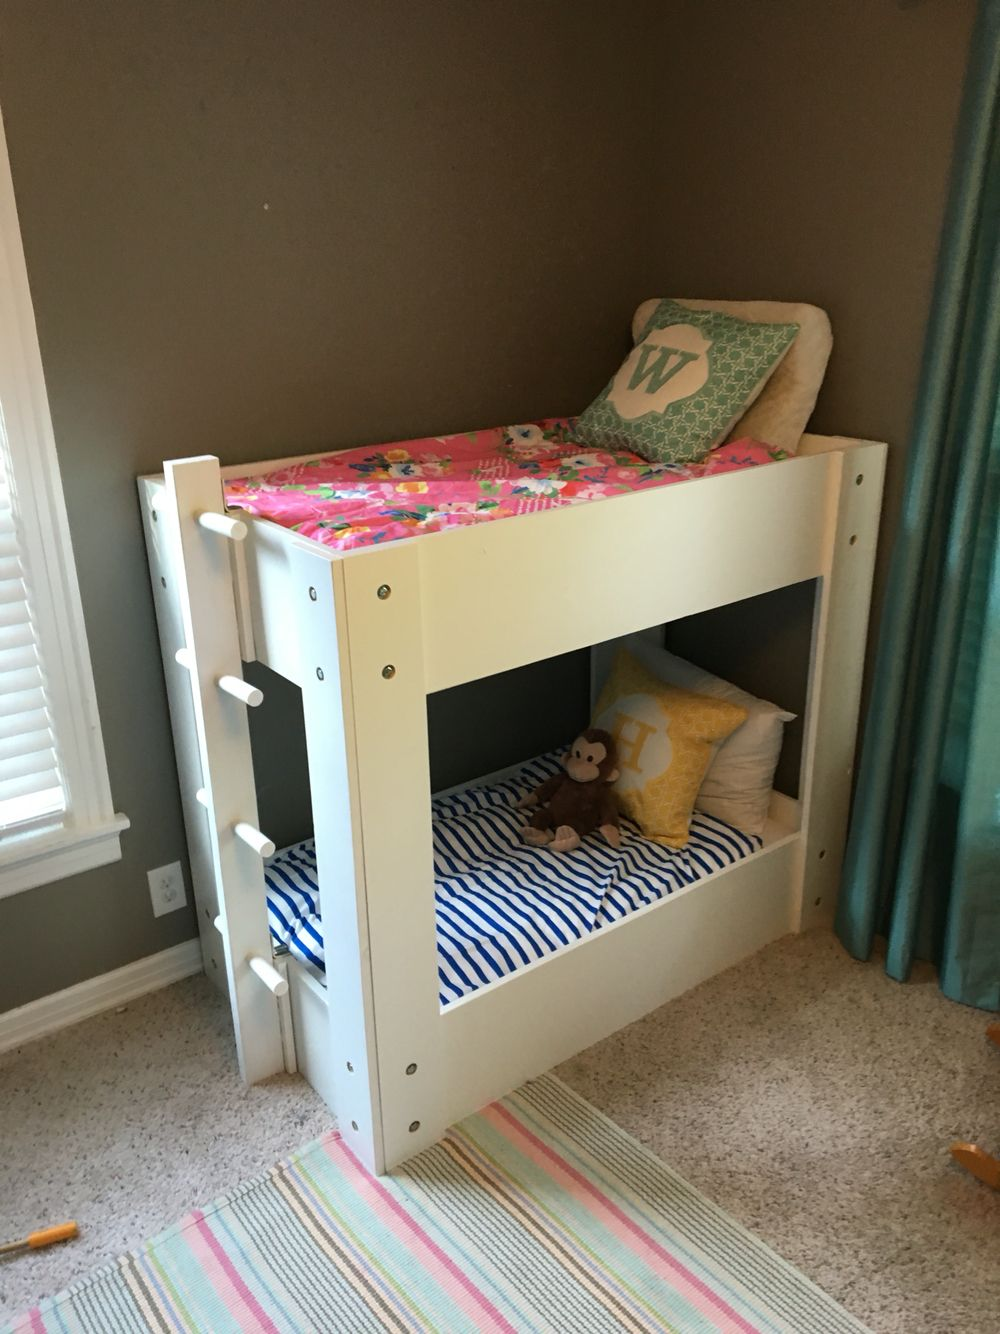 Diy Toddler Bunk Beds Total Cost 150 Toddler Bunk Beds